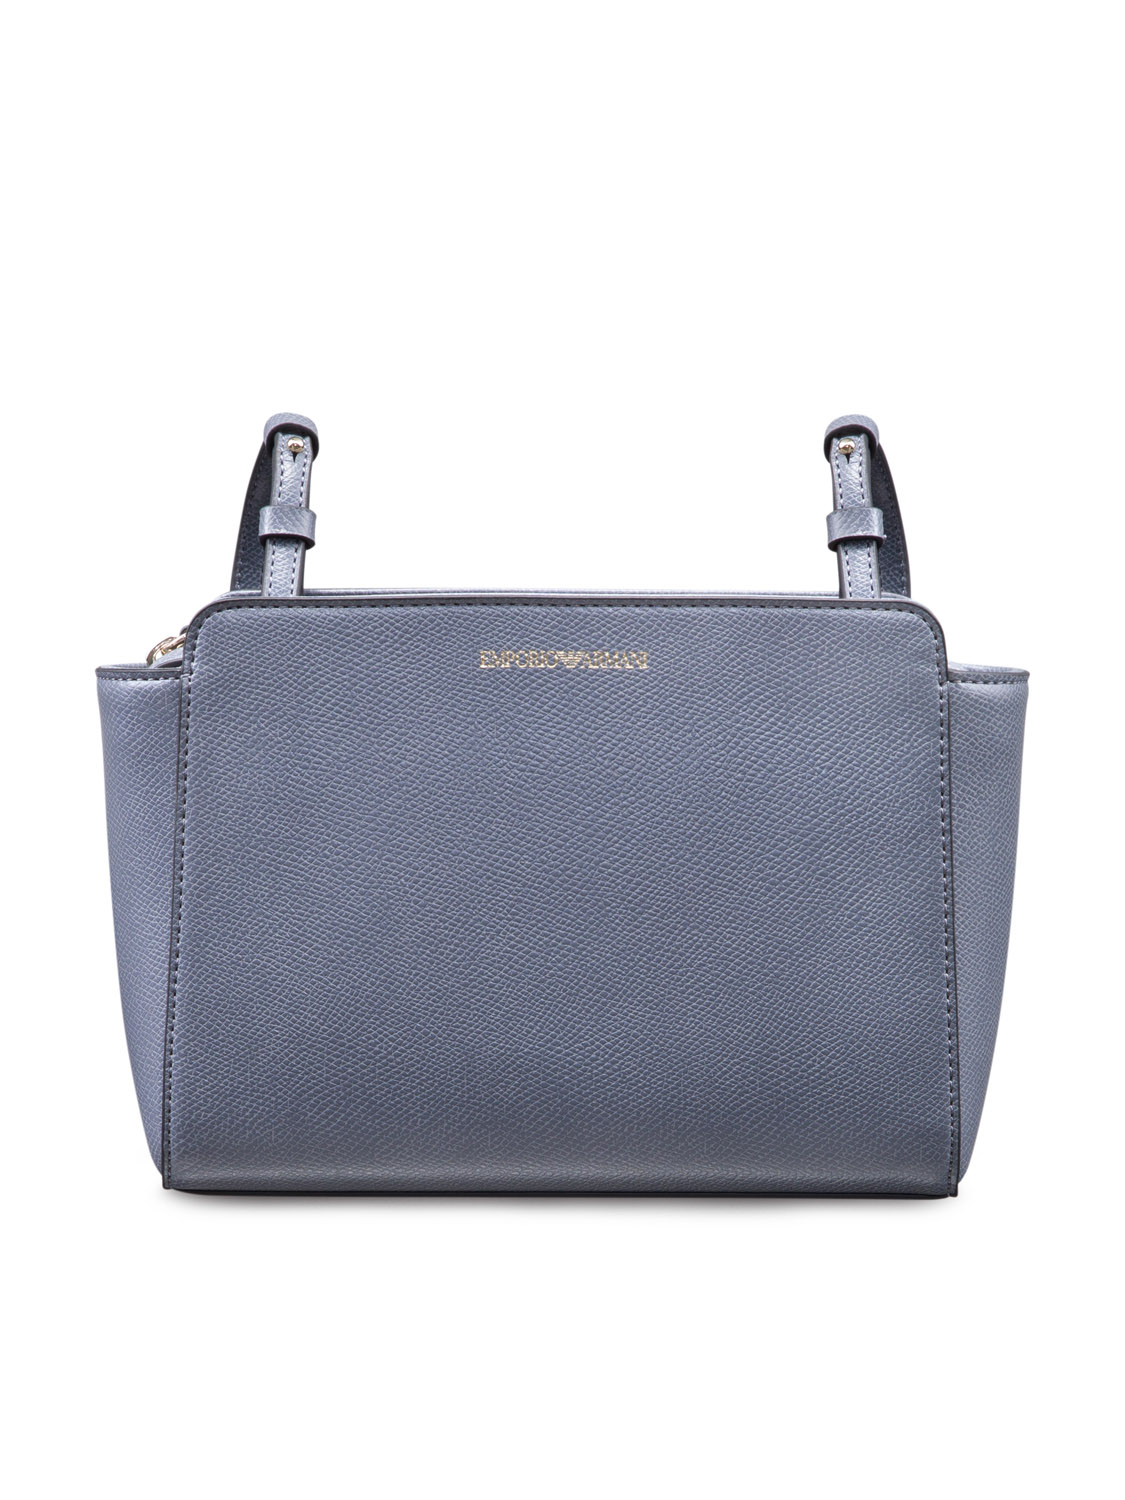 Emporio Armani - Mini bag with shoulder strap  b0a24869e426f